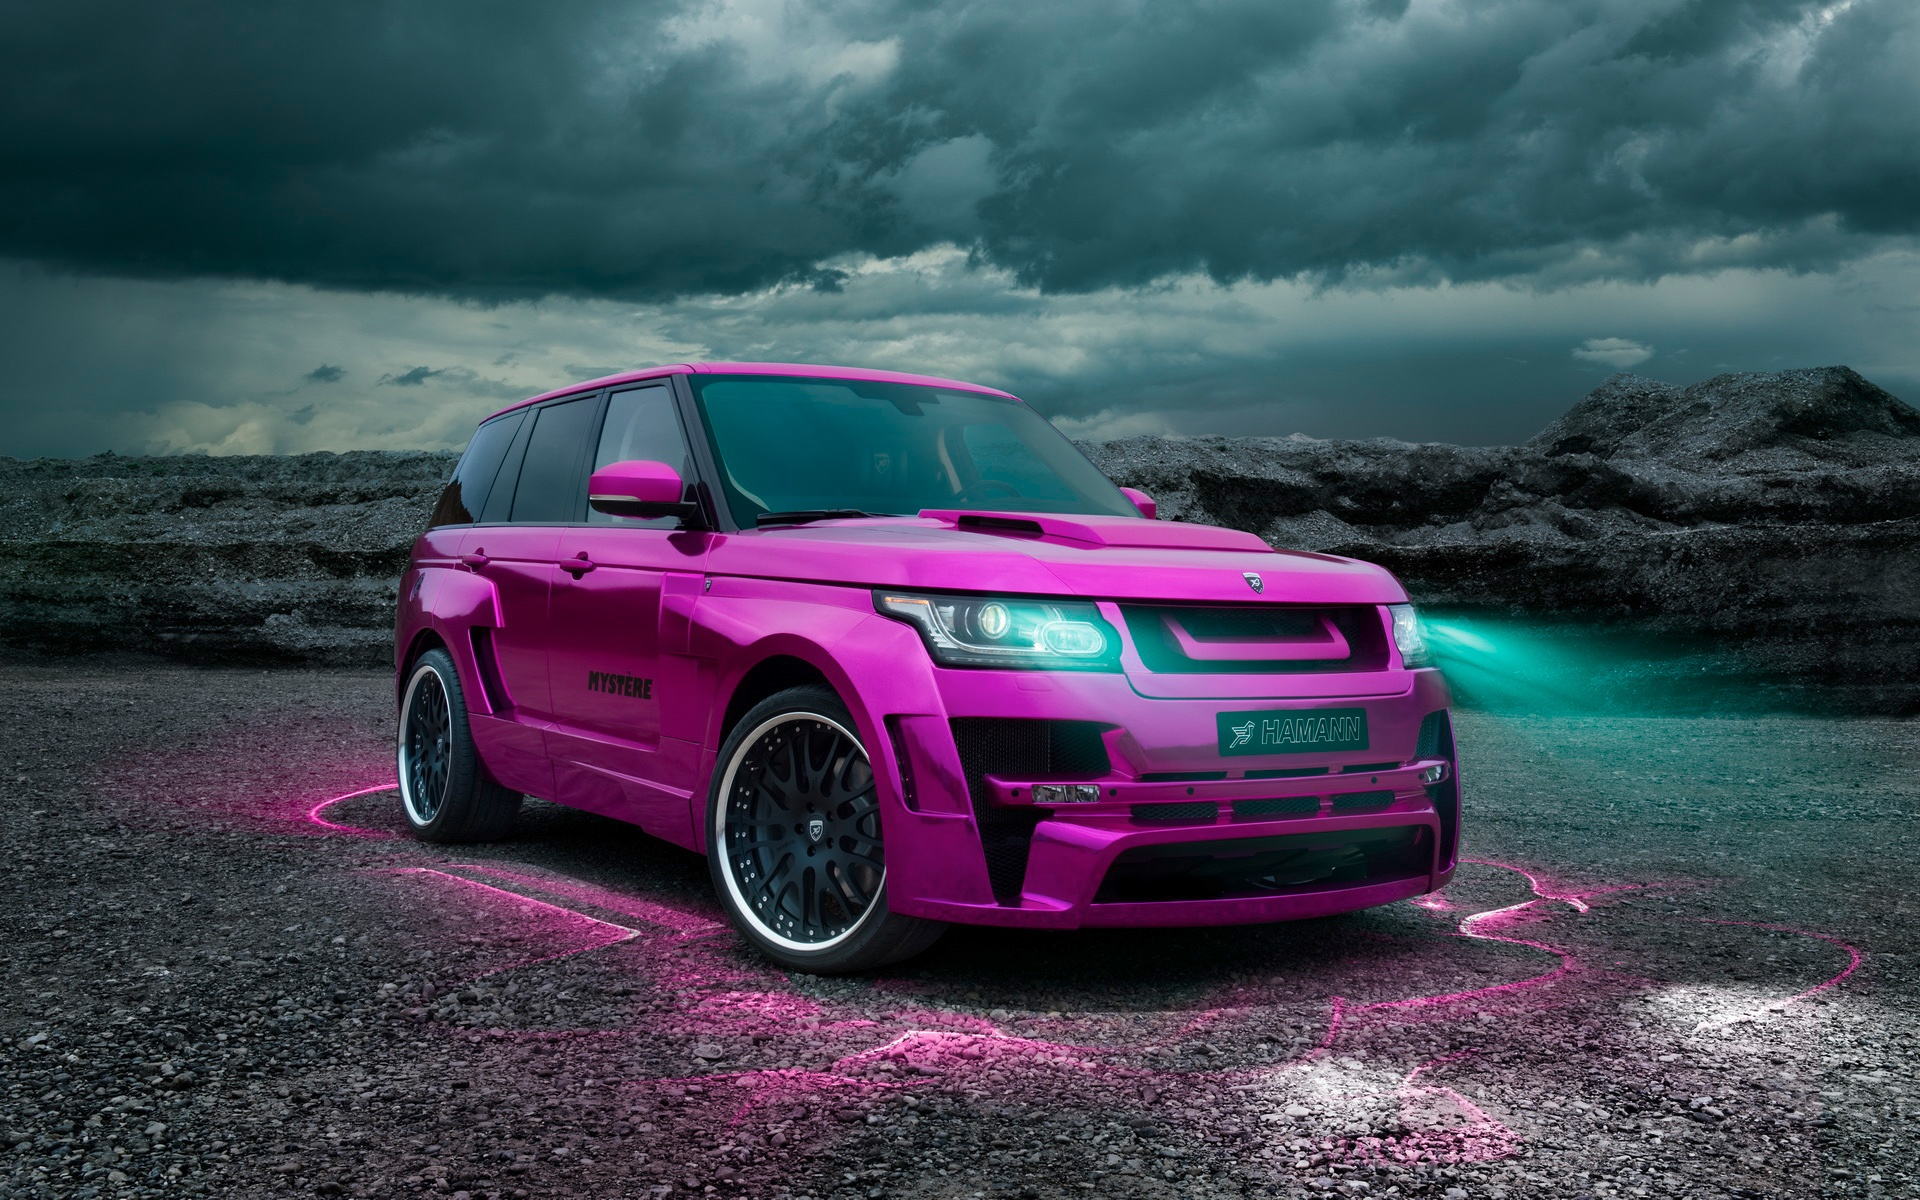 Hamann Range Rover Vogue 2013 Widebody Mystere #4154320, 1920x1200 ...